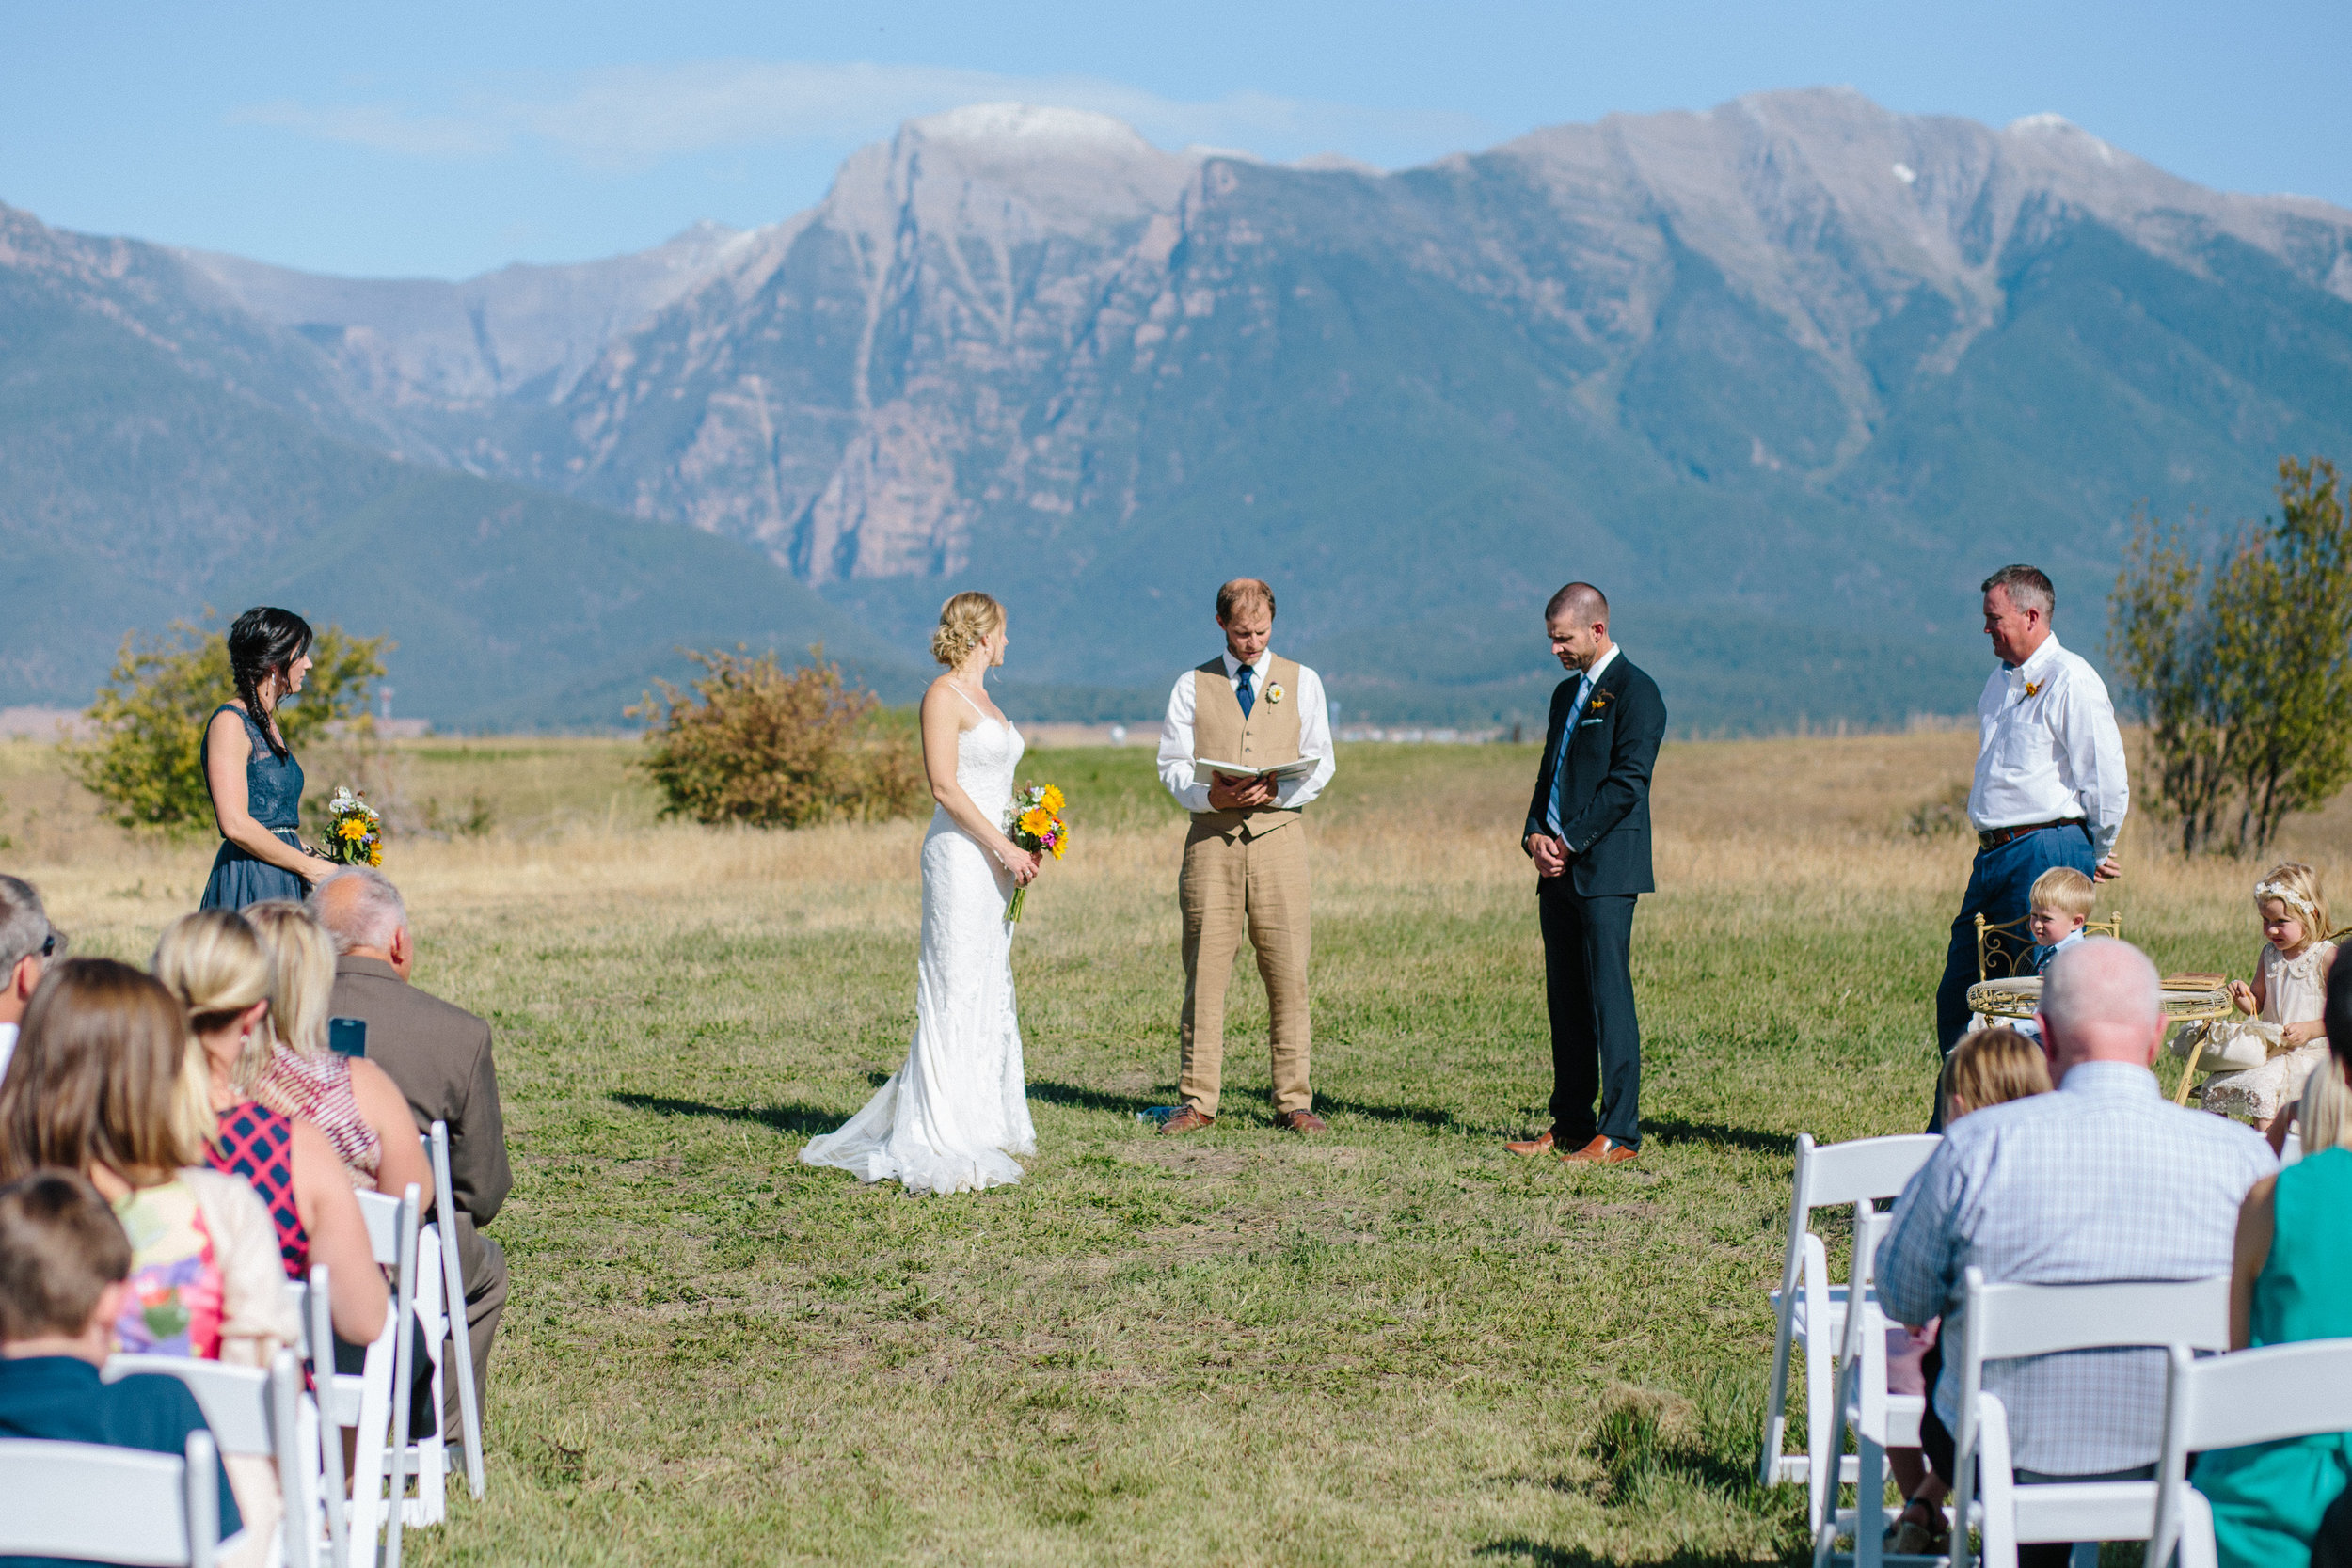 The lucky couple had snow-dusted peaks for their backdrop, even though it was 80 degrees during the ceremony. Photo by Dina Remi Studios.